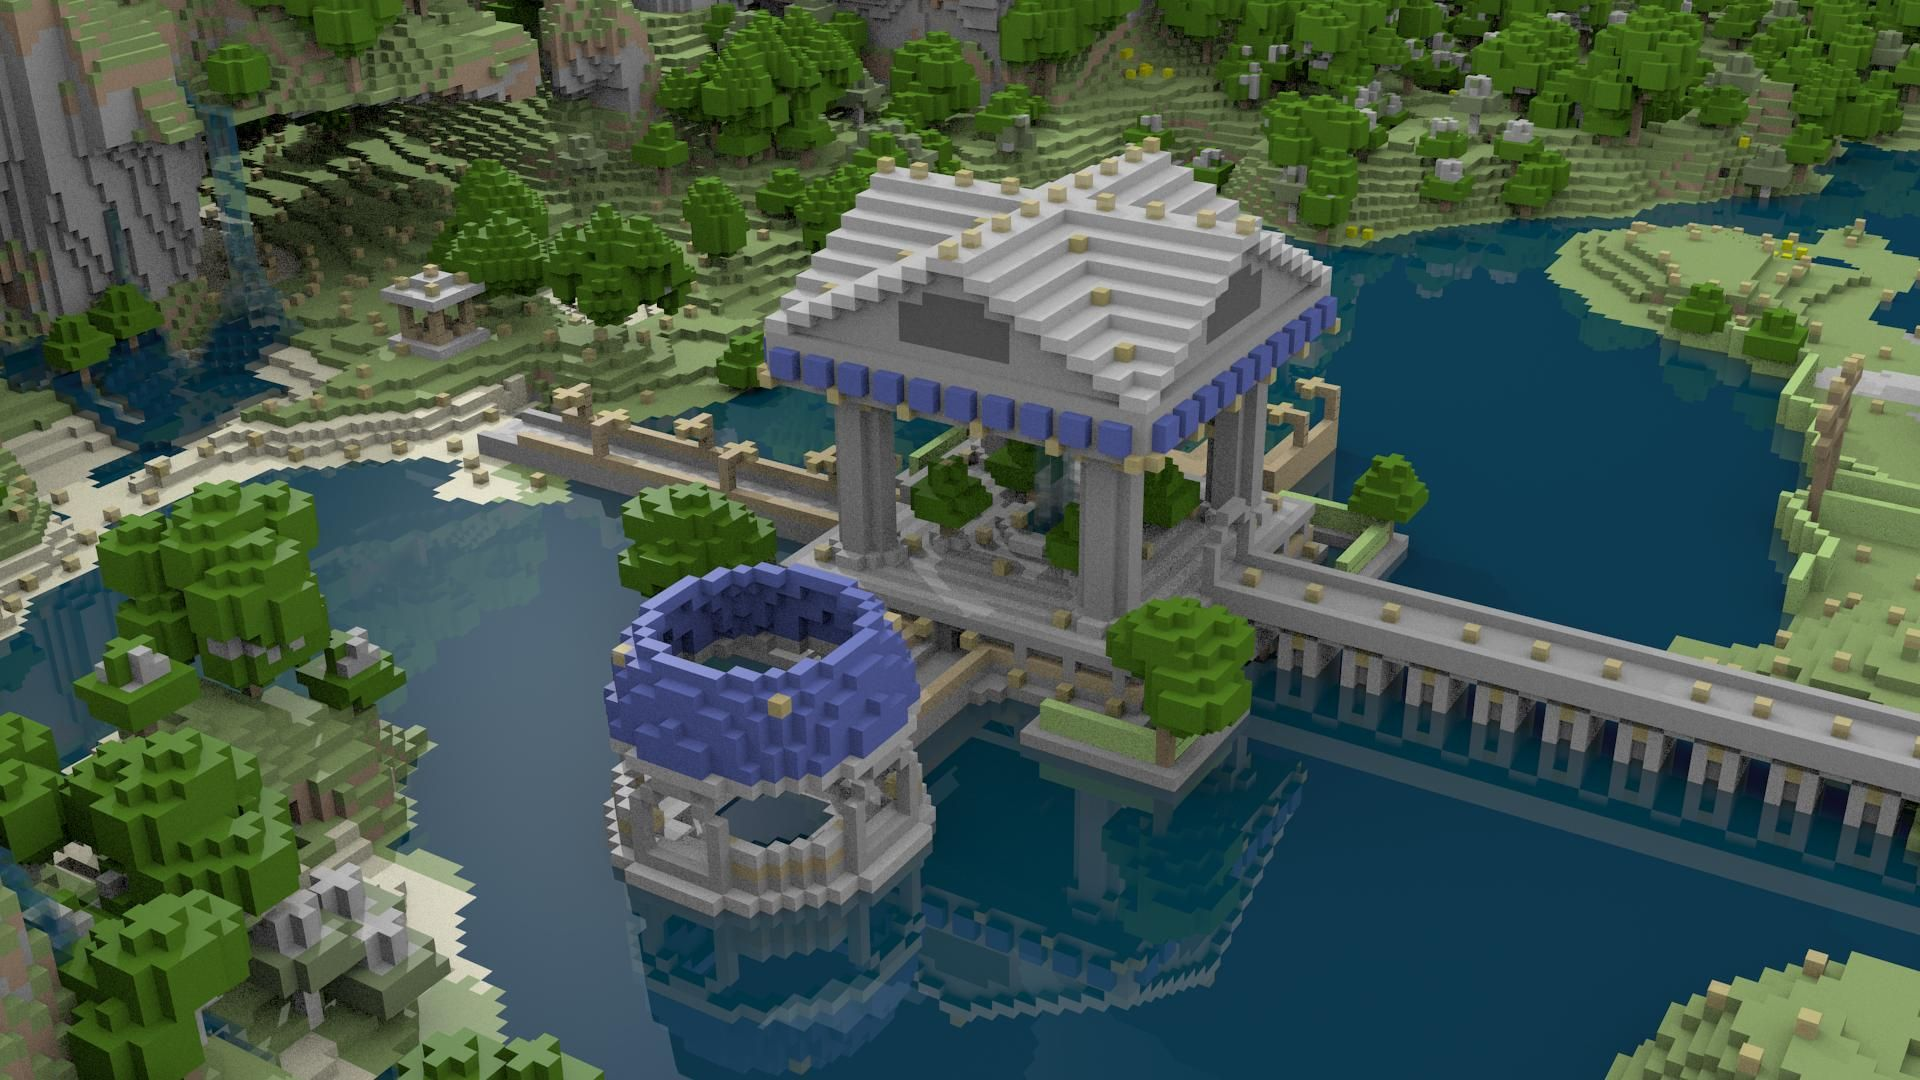 Minecraft Wallpaper Hd Collection For Free Download